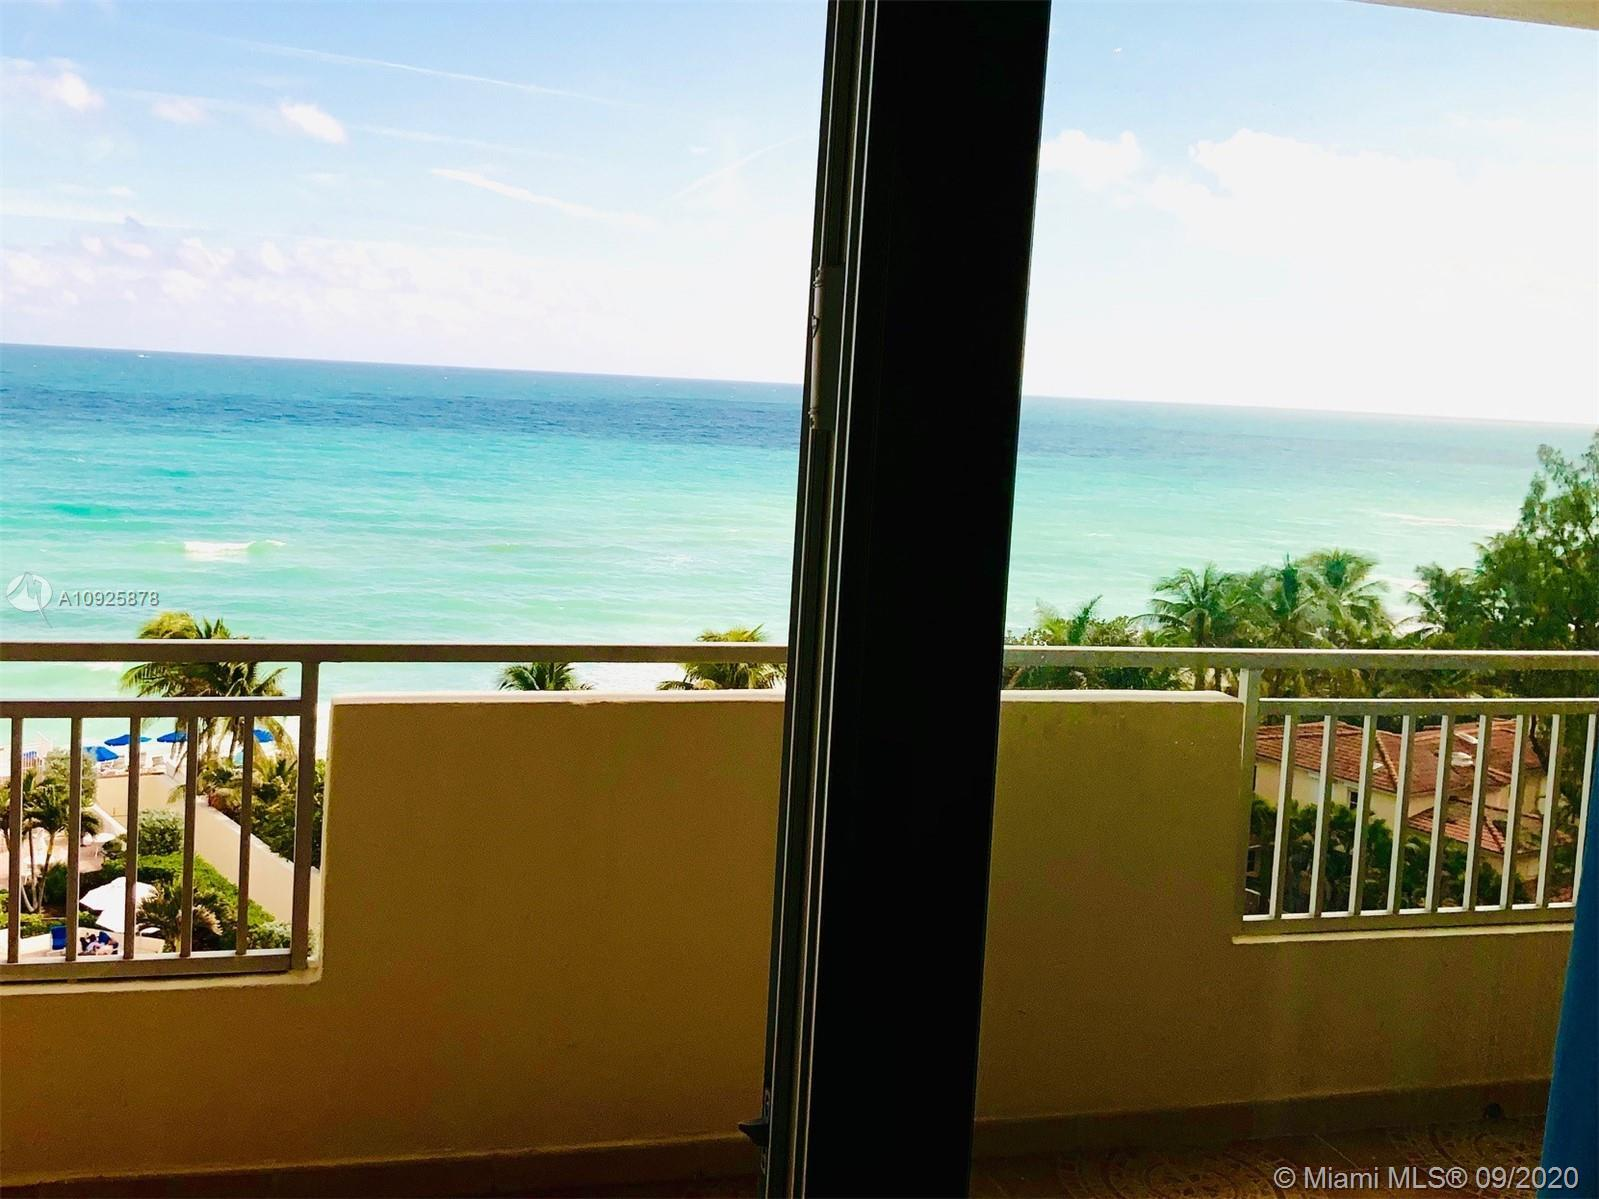 Direct Ocean view 1 bed room with 2 full bathrooms Completely Remodeled apartment with open Kitchen